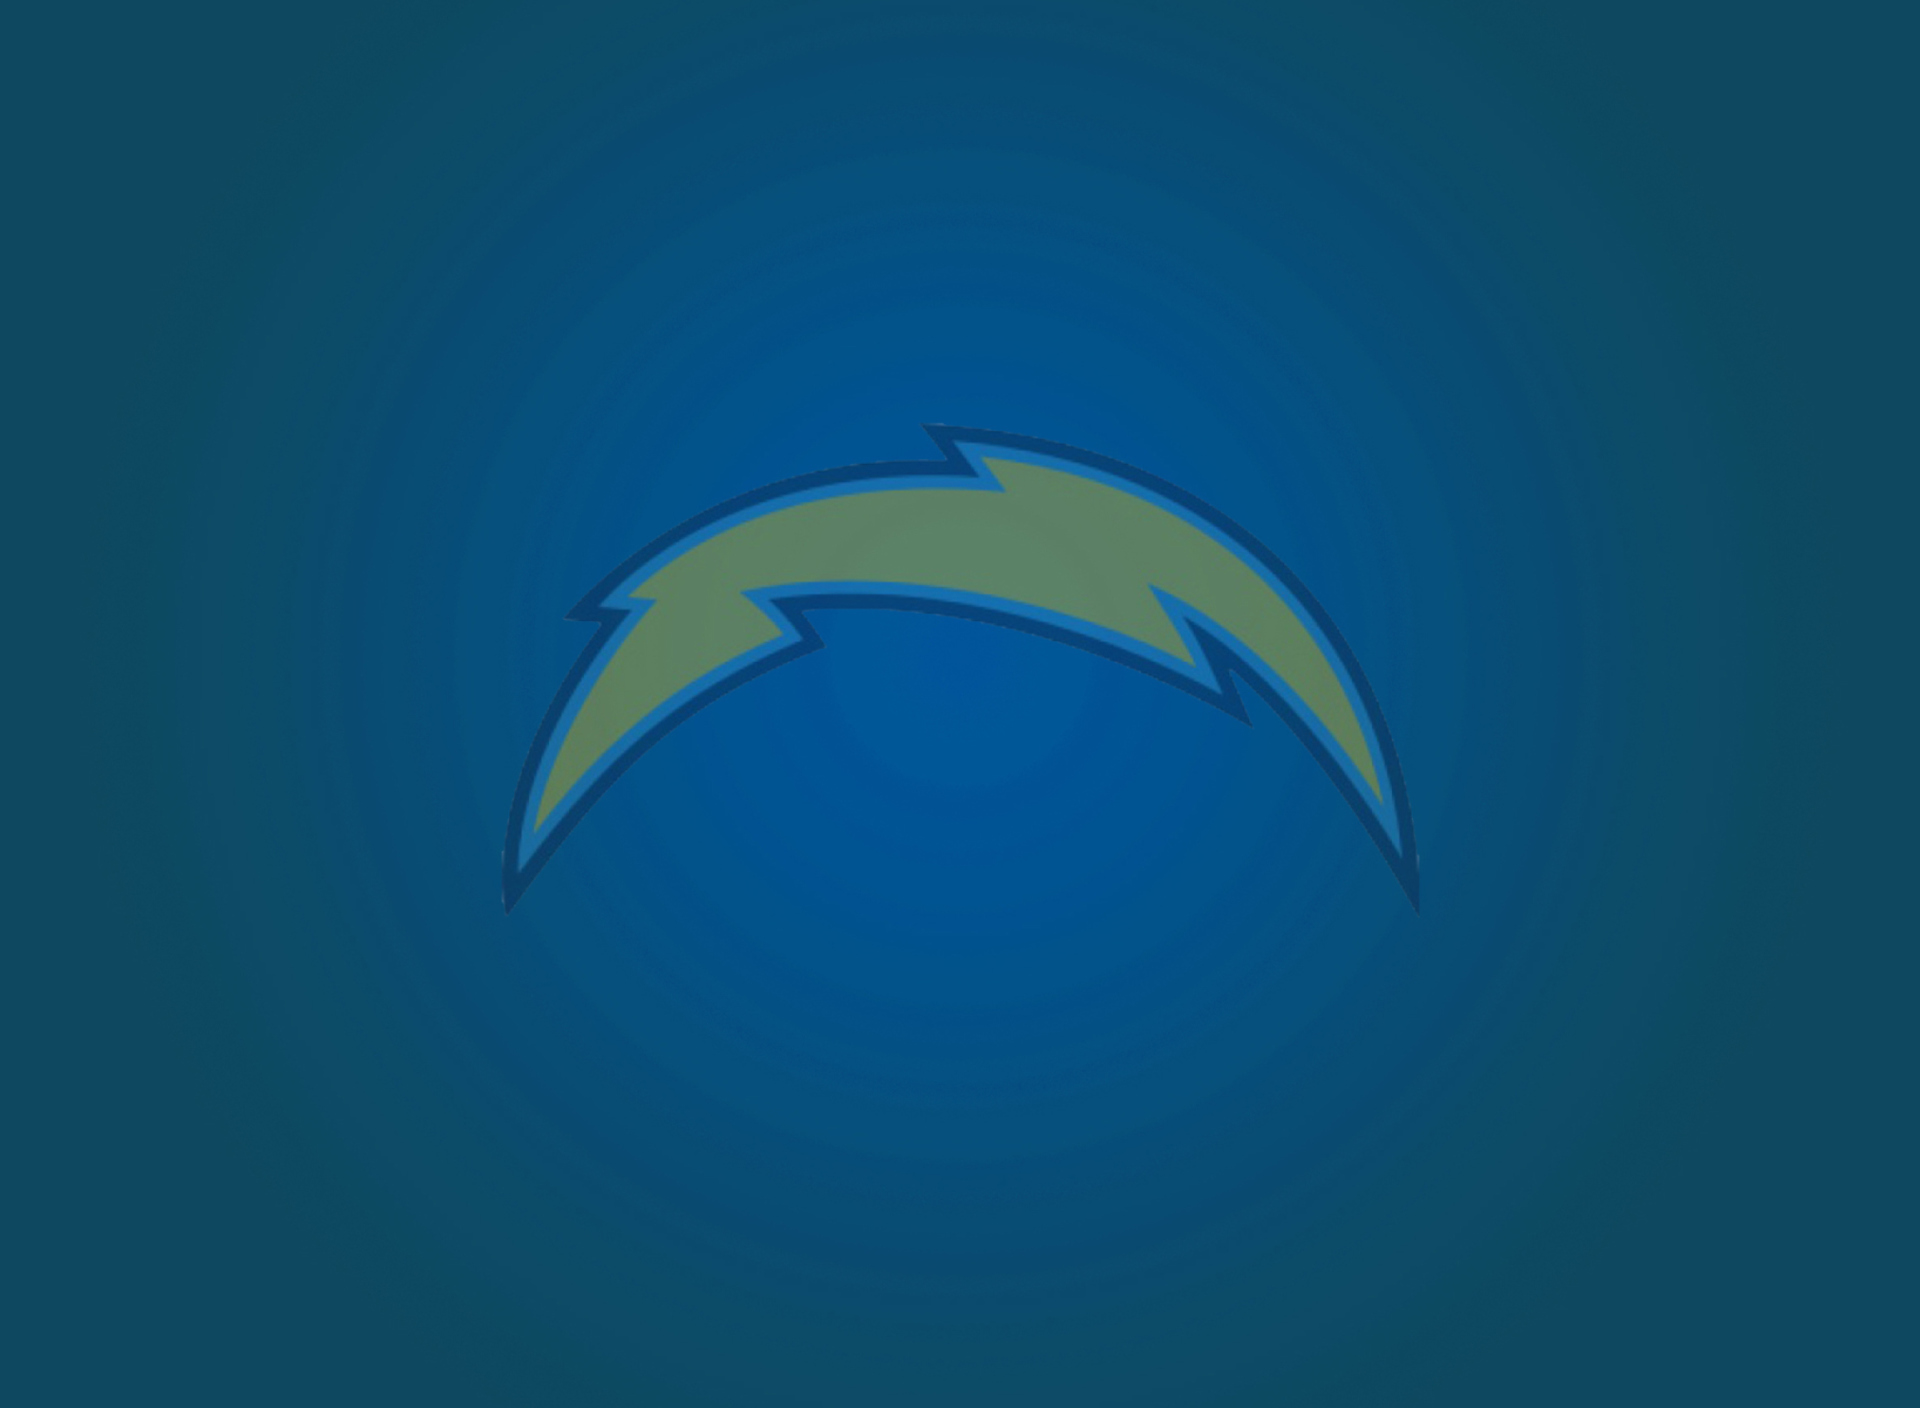 San Diego Chargers Iphone Wallpaper Klp3rm Clipart Suggest